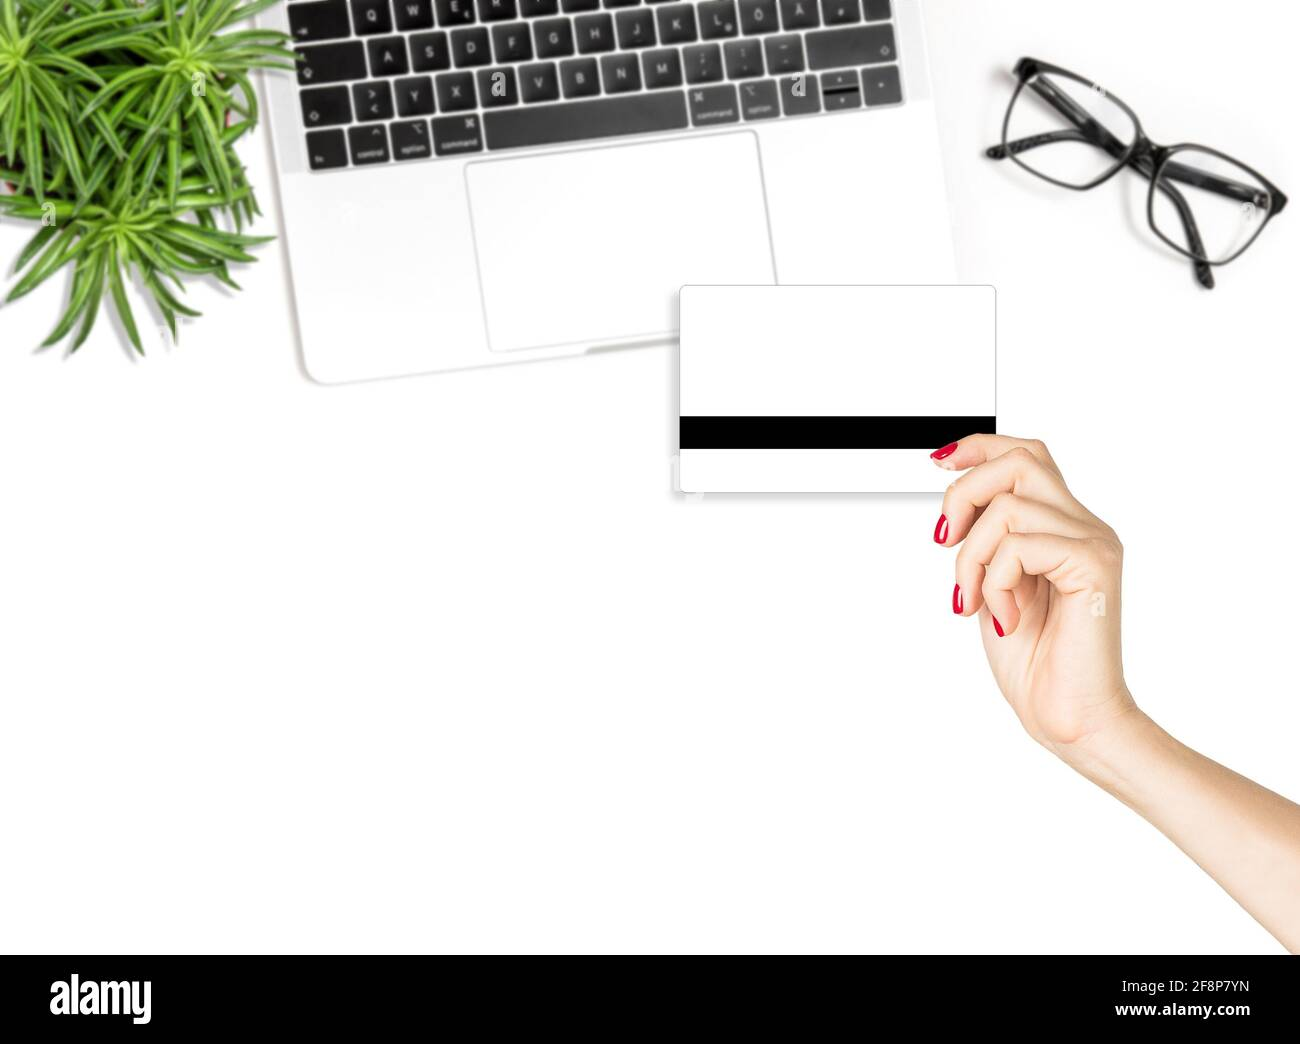 Online shopping concept. Female hand holding credit card. Fashion flat lay blog social media Stock Photo